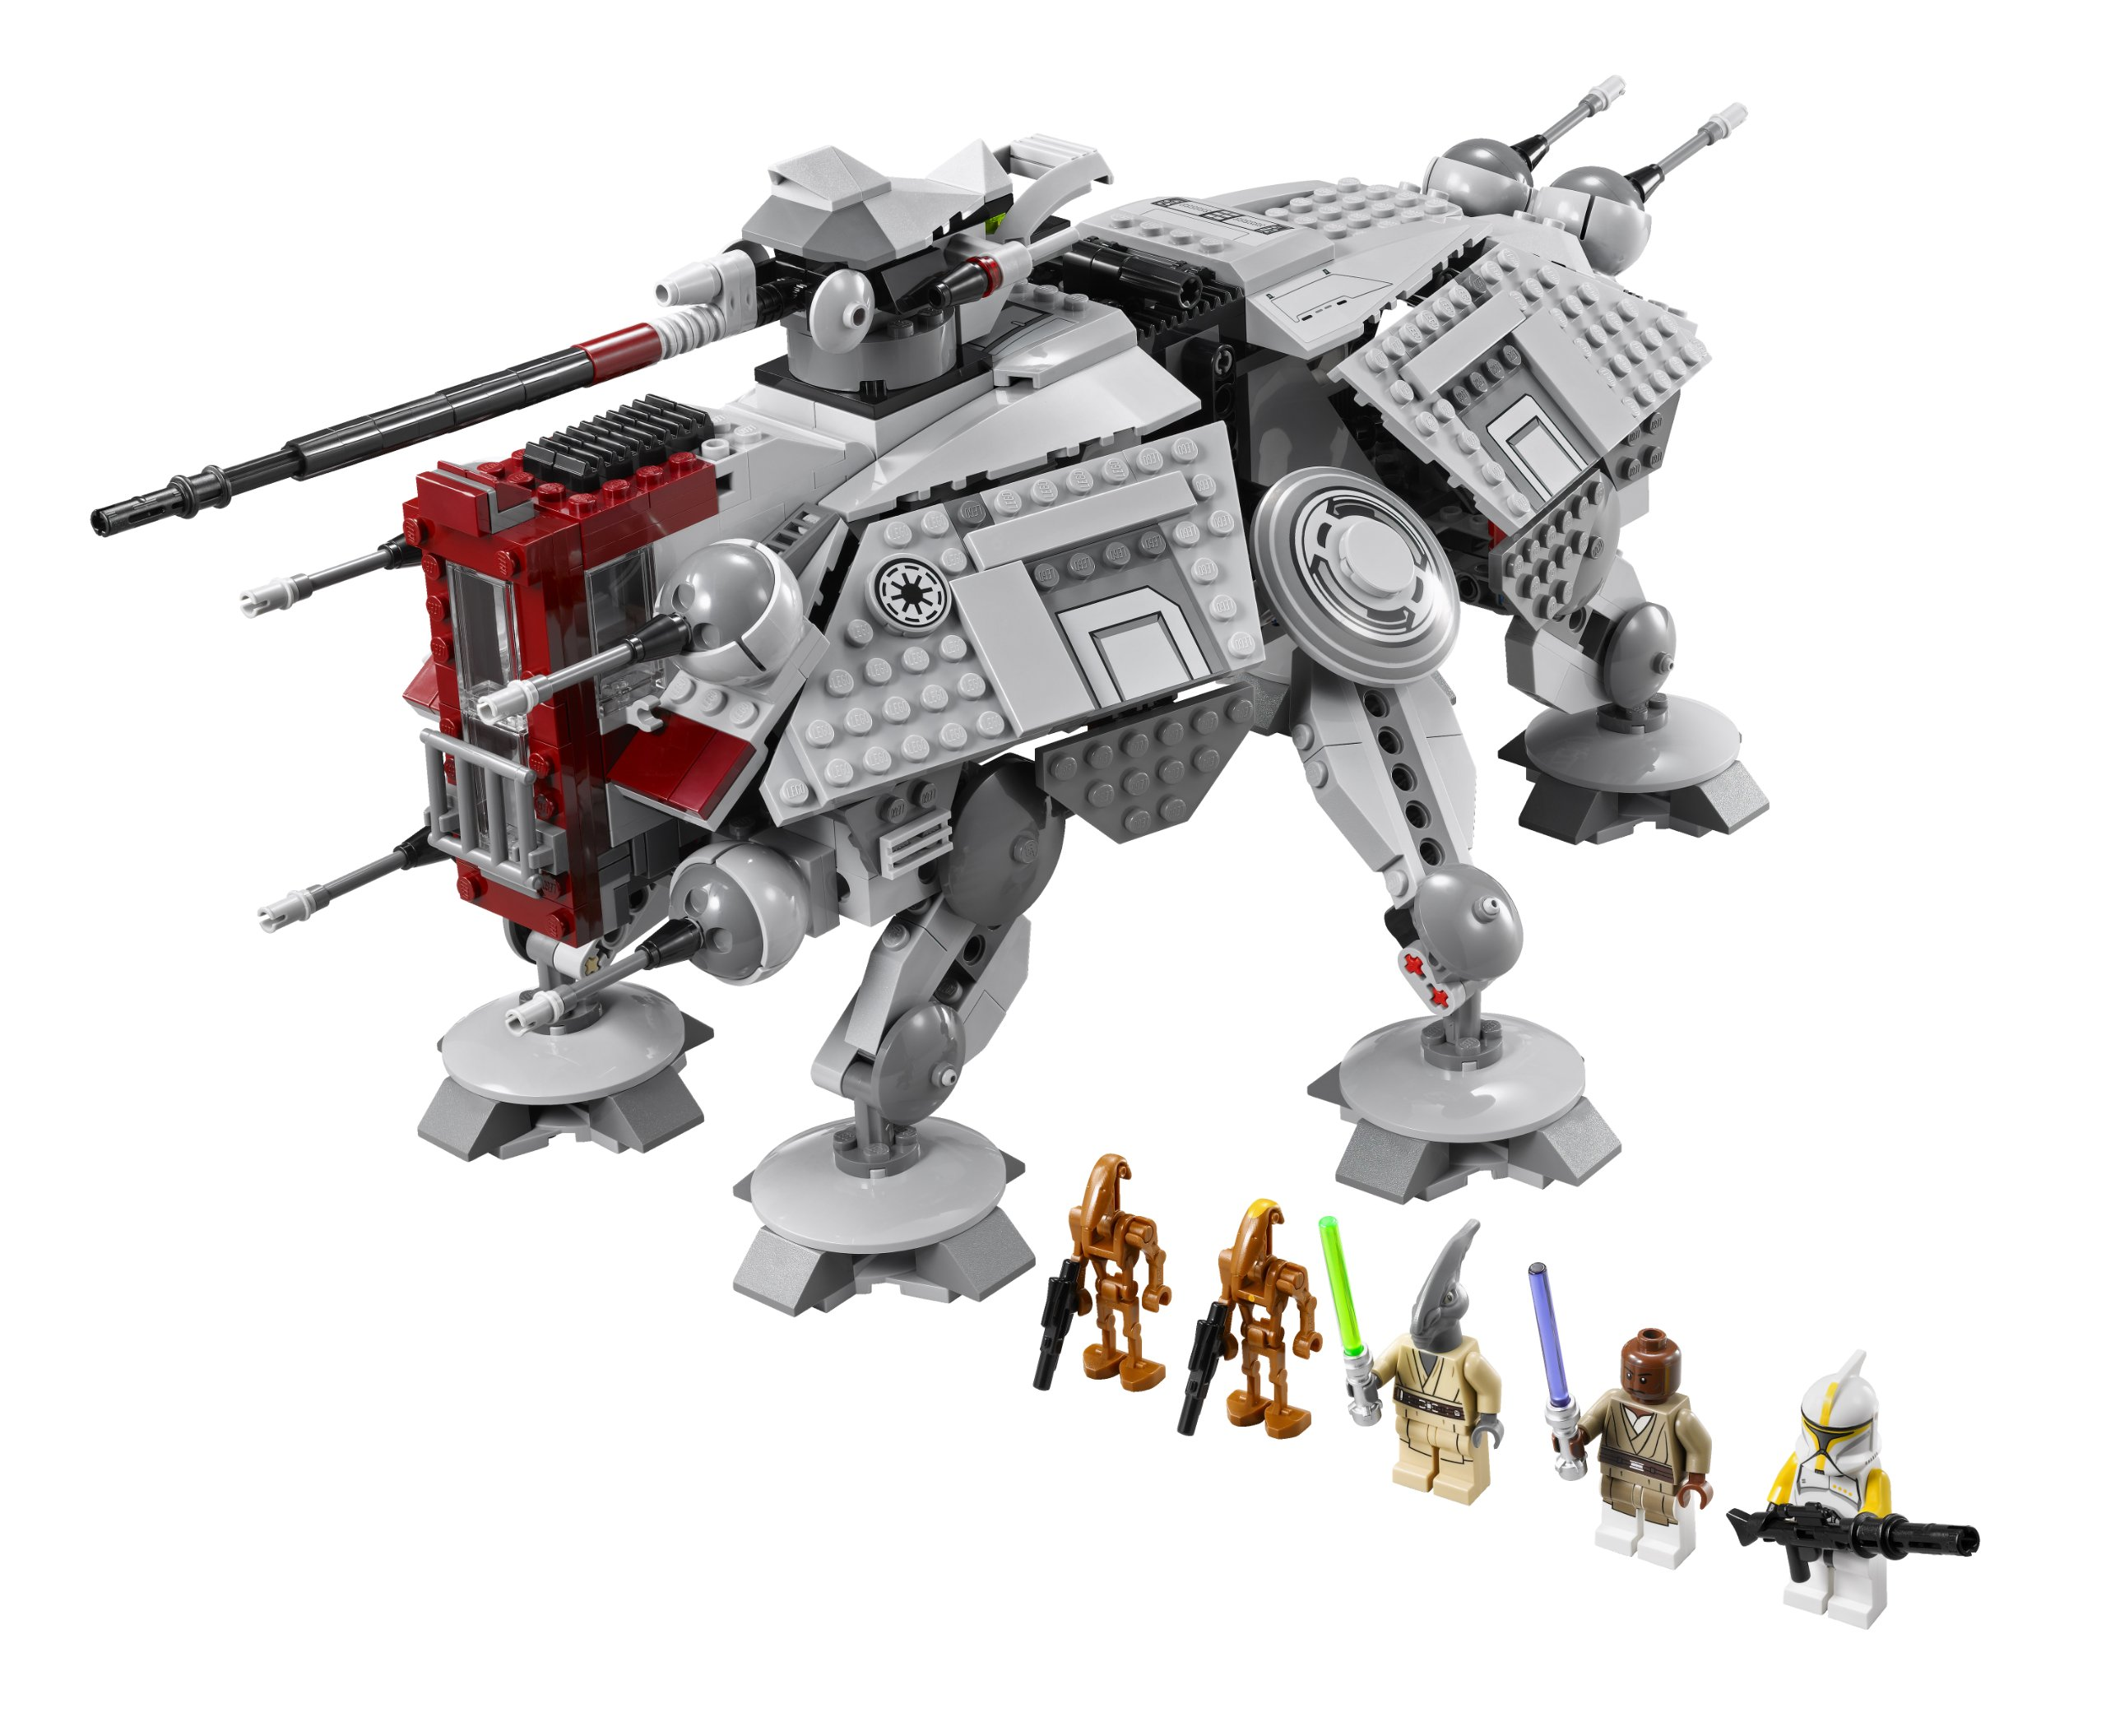 Lego Star Wars Lego 4482 AT-TE parallel import goods